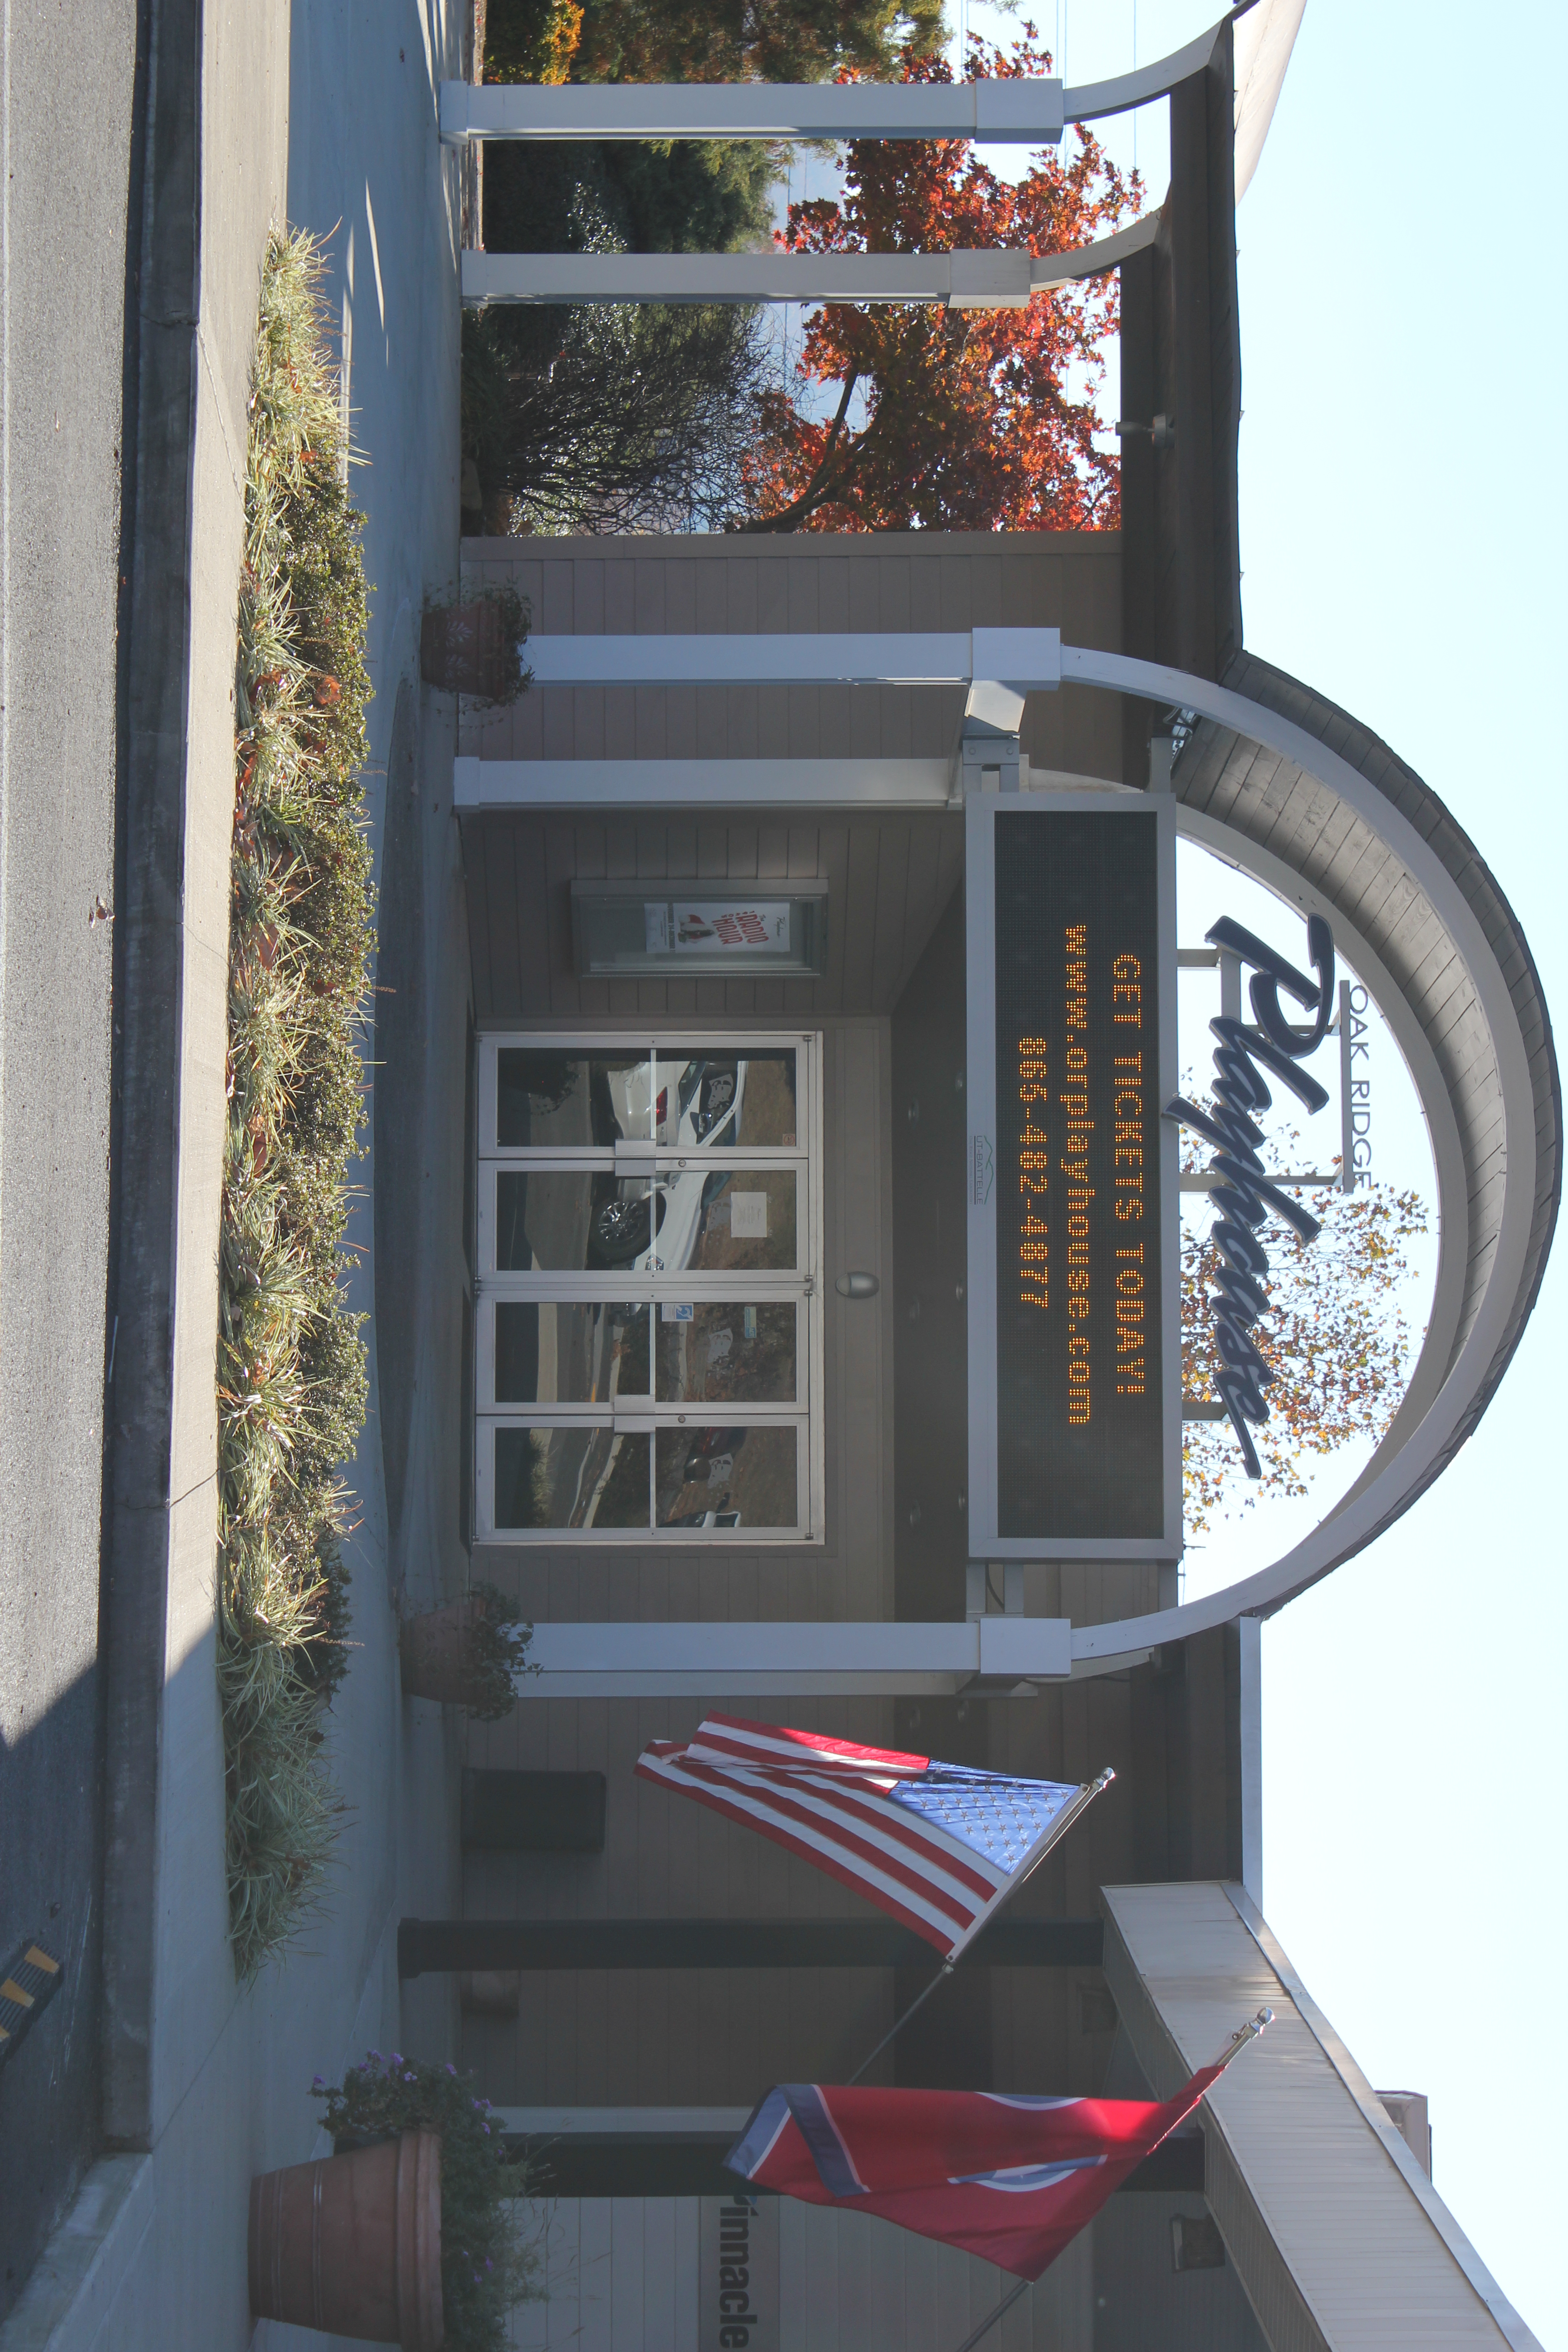 5 FUN FACTS ABOUT THE OAK RIDGE PLAYHOUSE